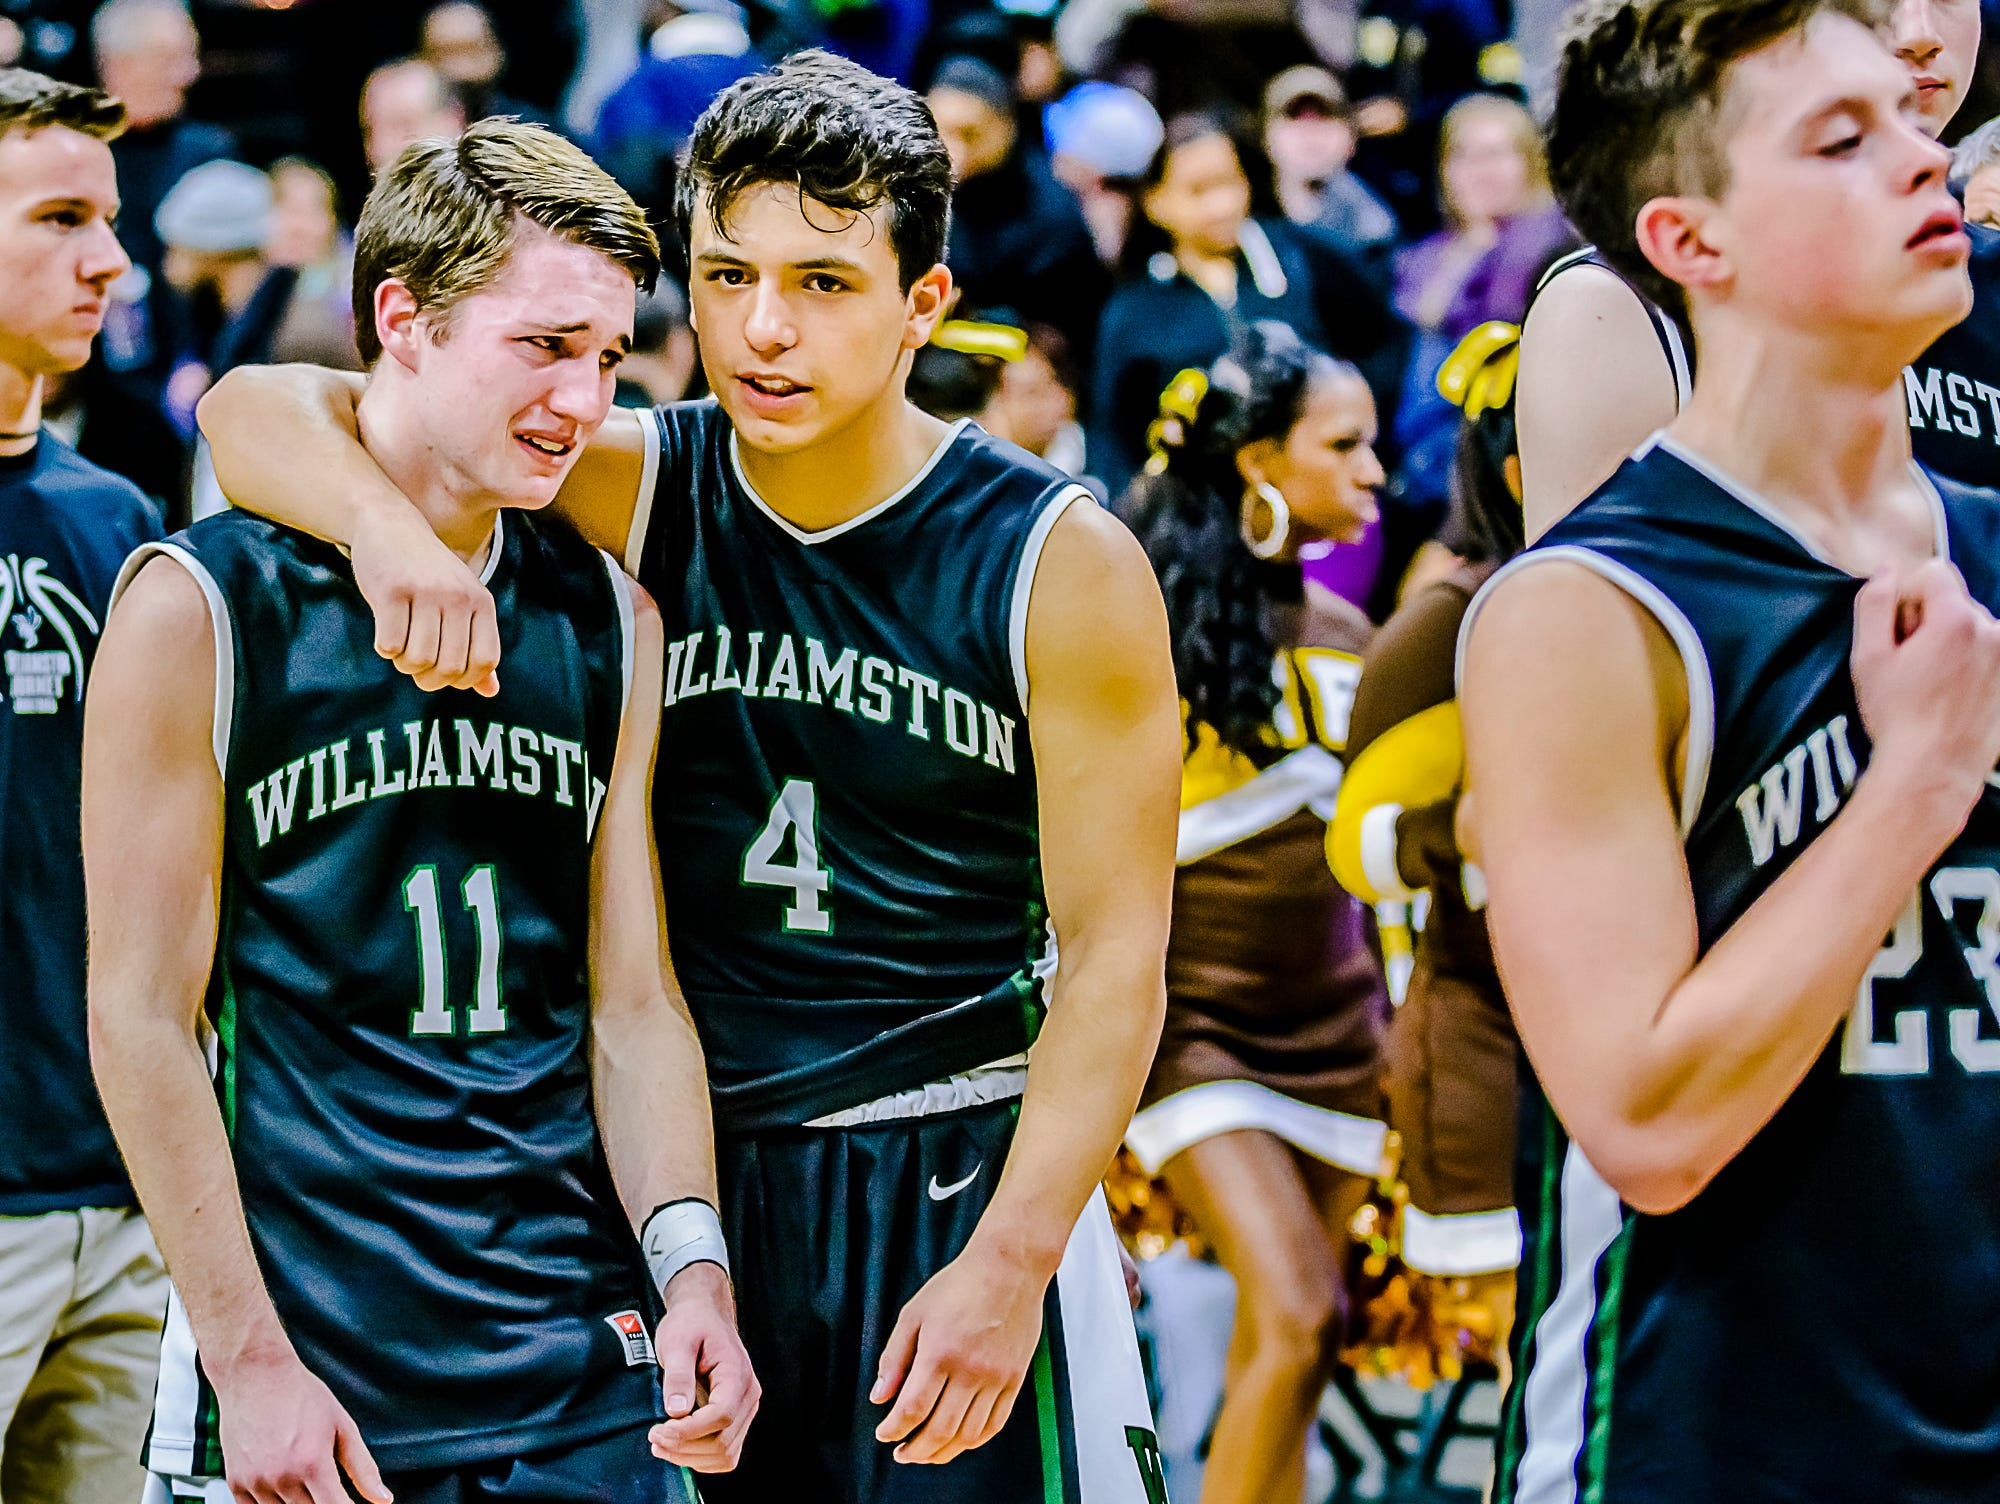 Sophomore Frankie Toomey ,4, of Williamston consoles senior Connor Porrell ,11, after their Class B state semifinal loss to Detroit Henry Ford Friday March 25, 2016 at the Breslin Center in East Lansing. KEVIN W. FOWLER PHOTO